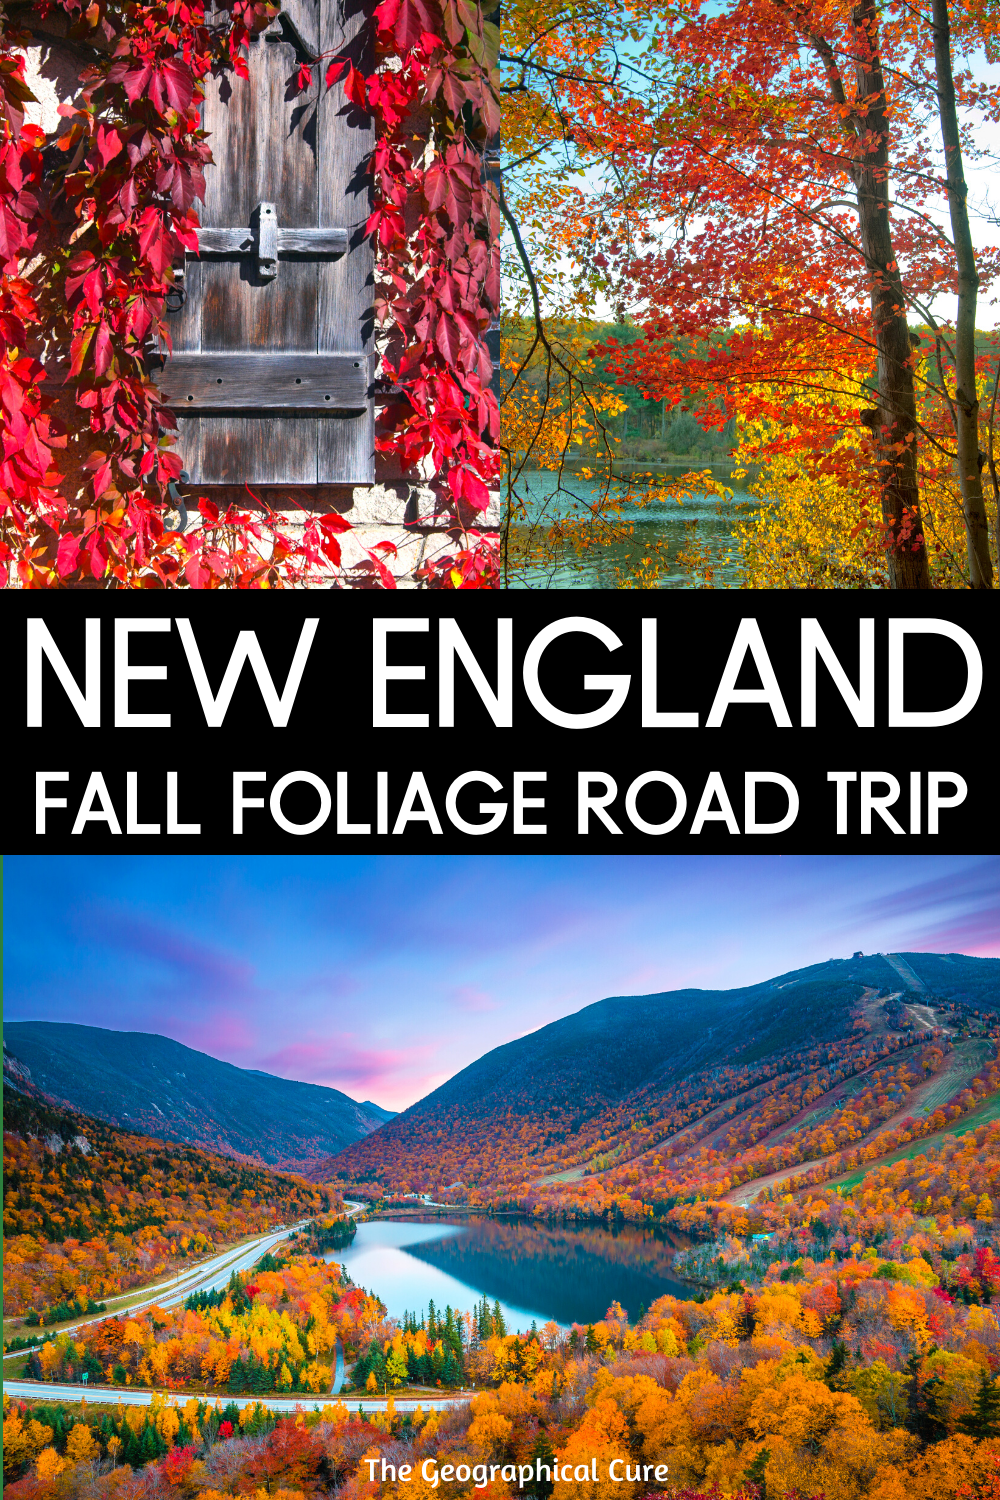 Perfect 1 Week Fall Foliage Road Trip in New England